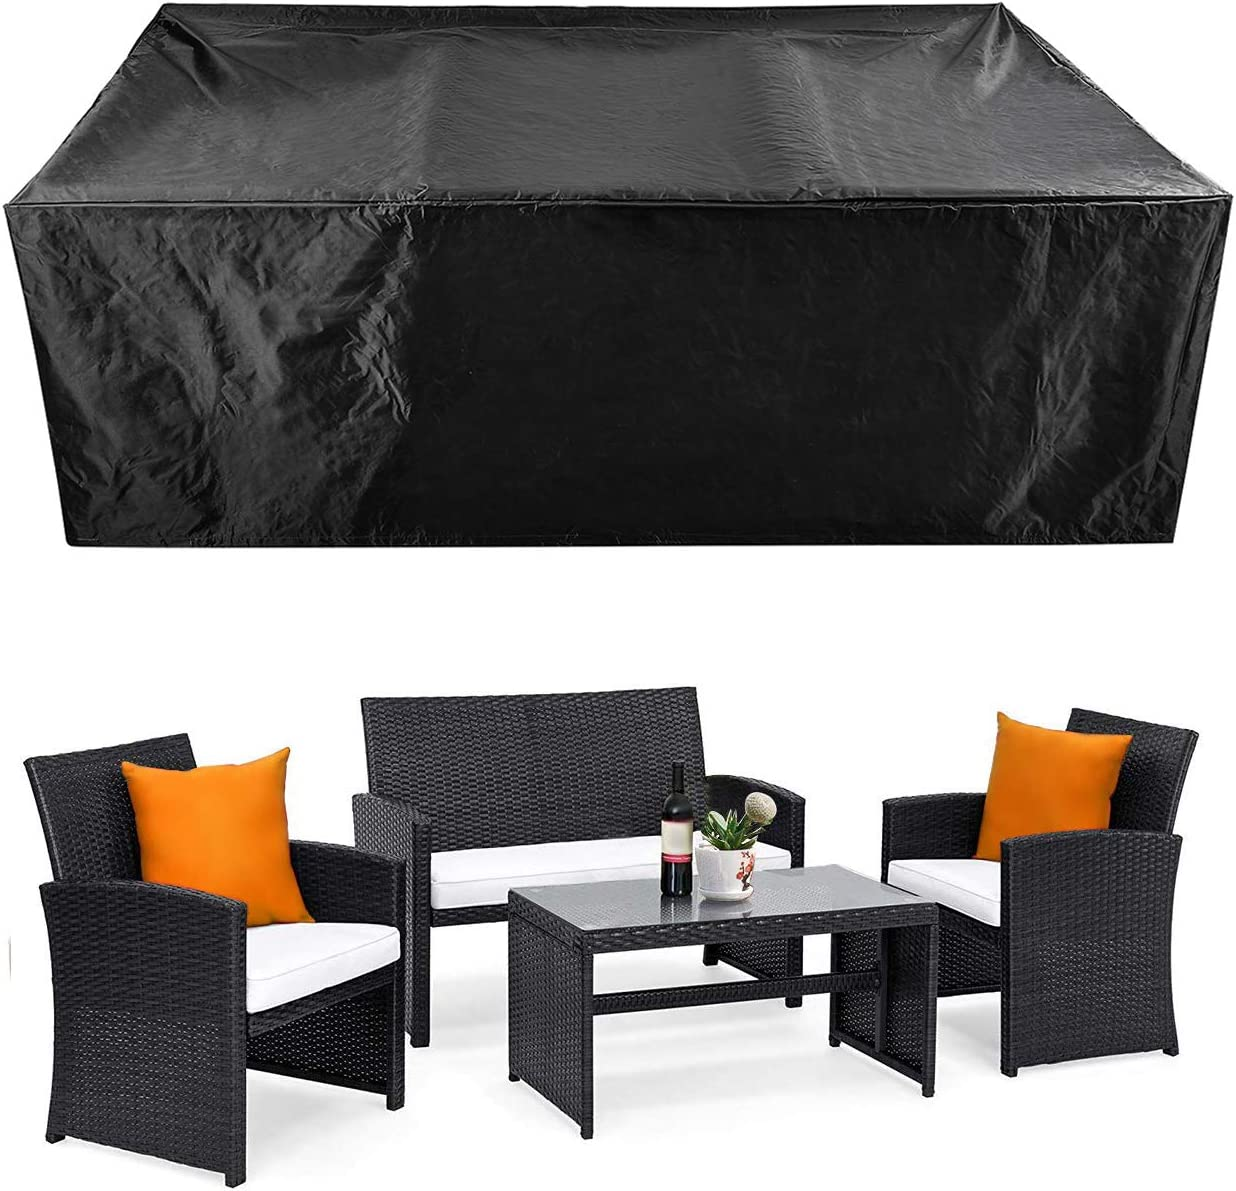 Patio Furniture Set Cover Outdoor Sectional Sofa Set Covers Outdoor Table And Chair Set Covers Water Resistant 78 L X 62 W X 30 H Garden Outdoor